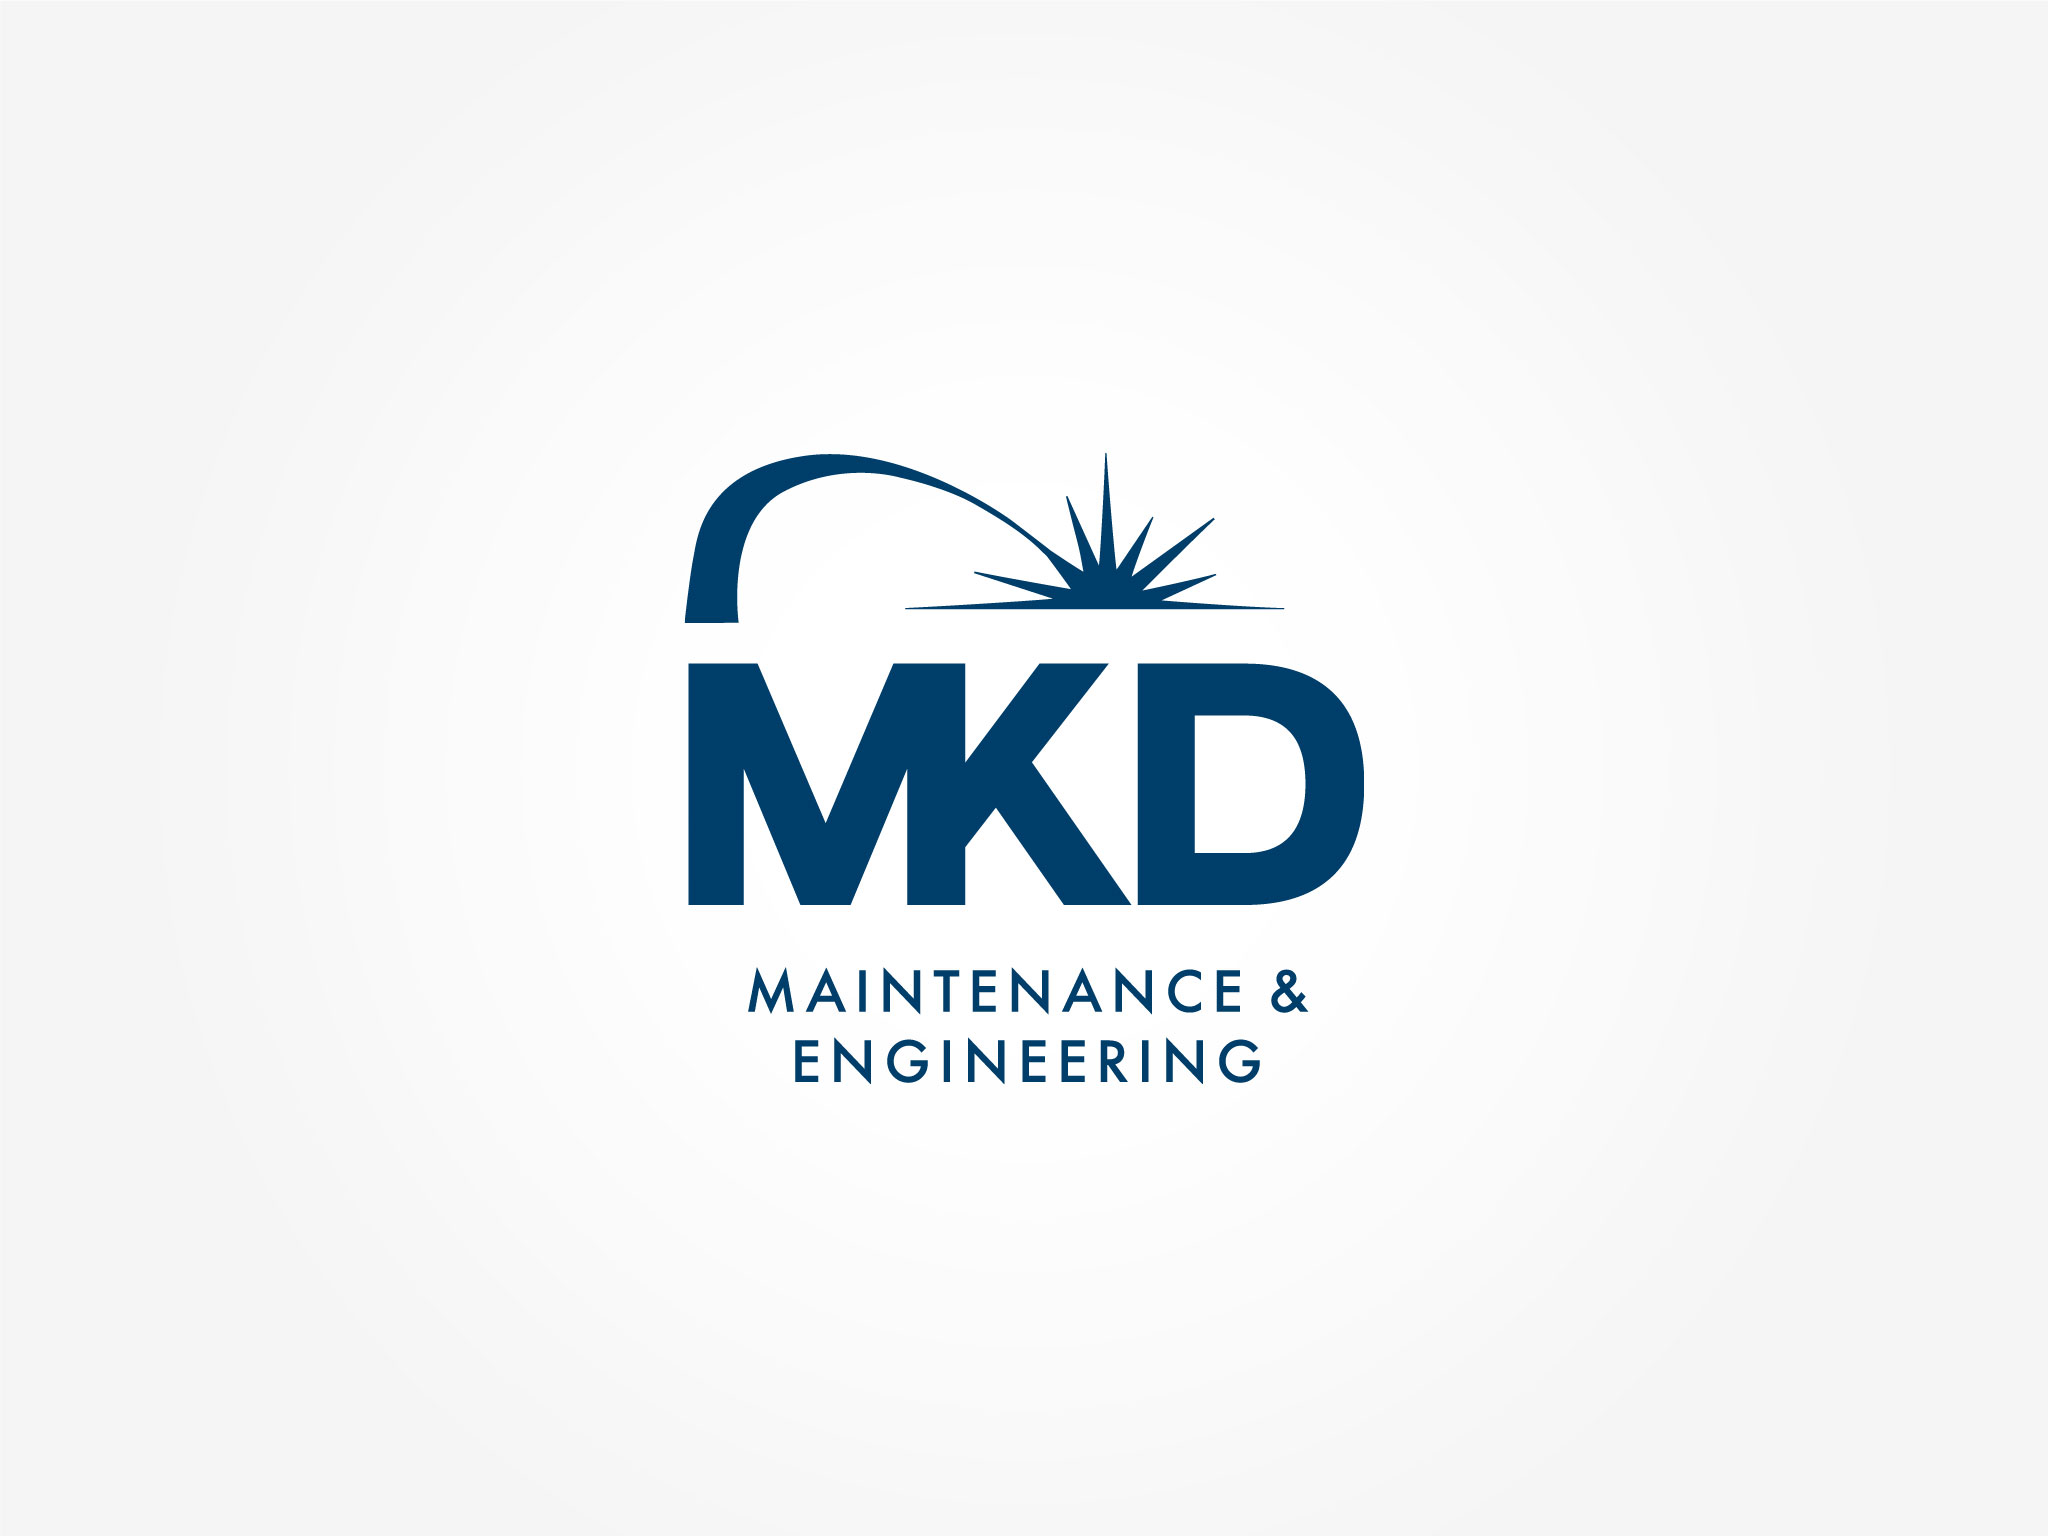 MKD Maintenance & Engineering